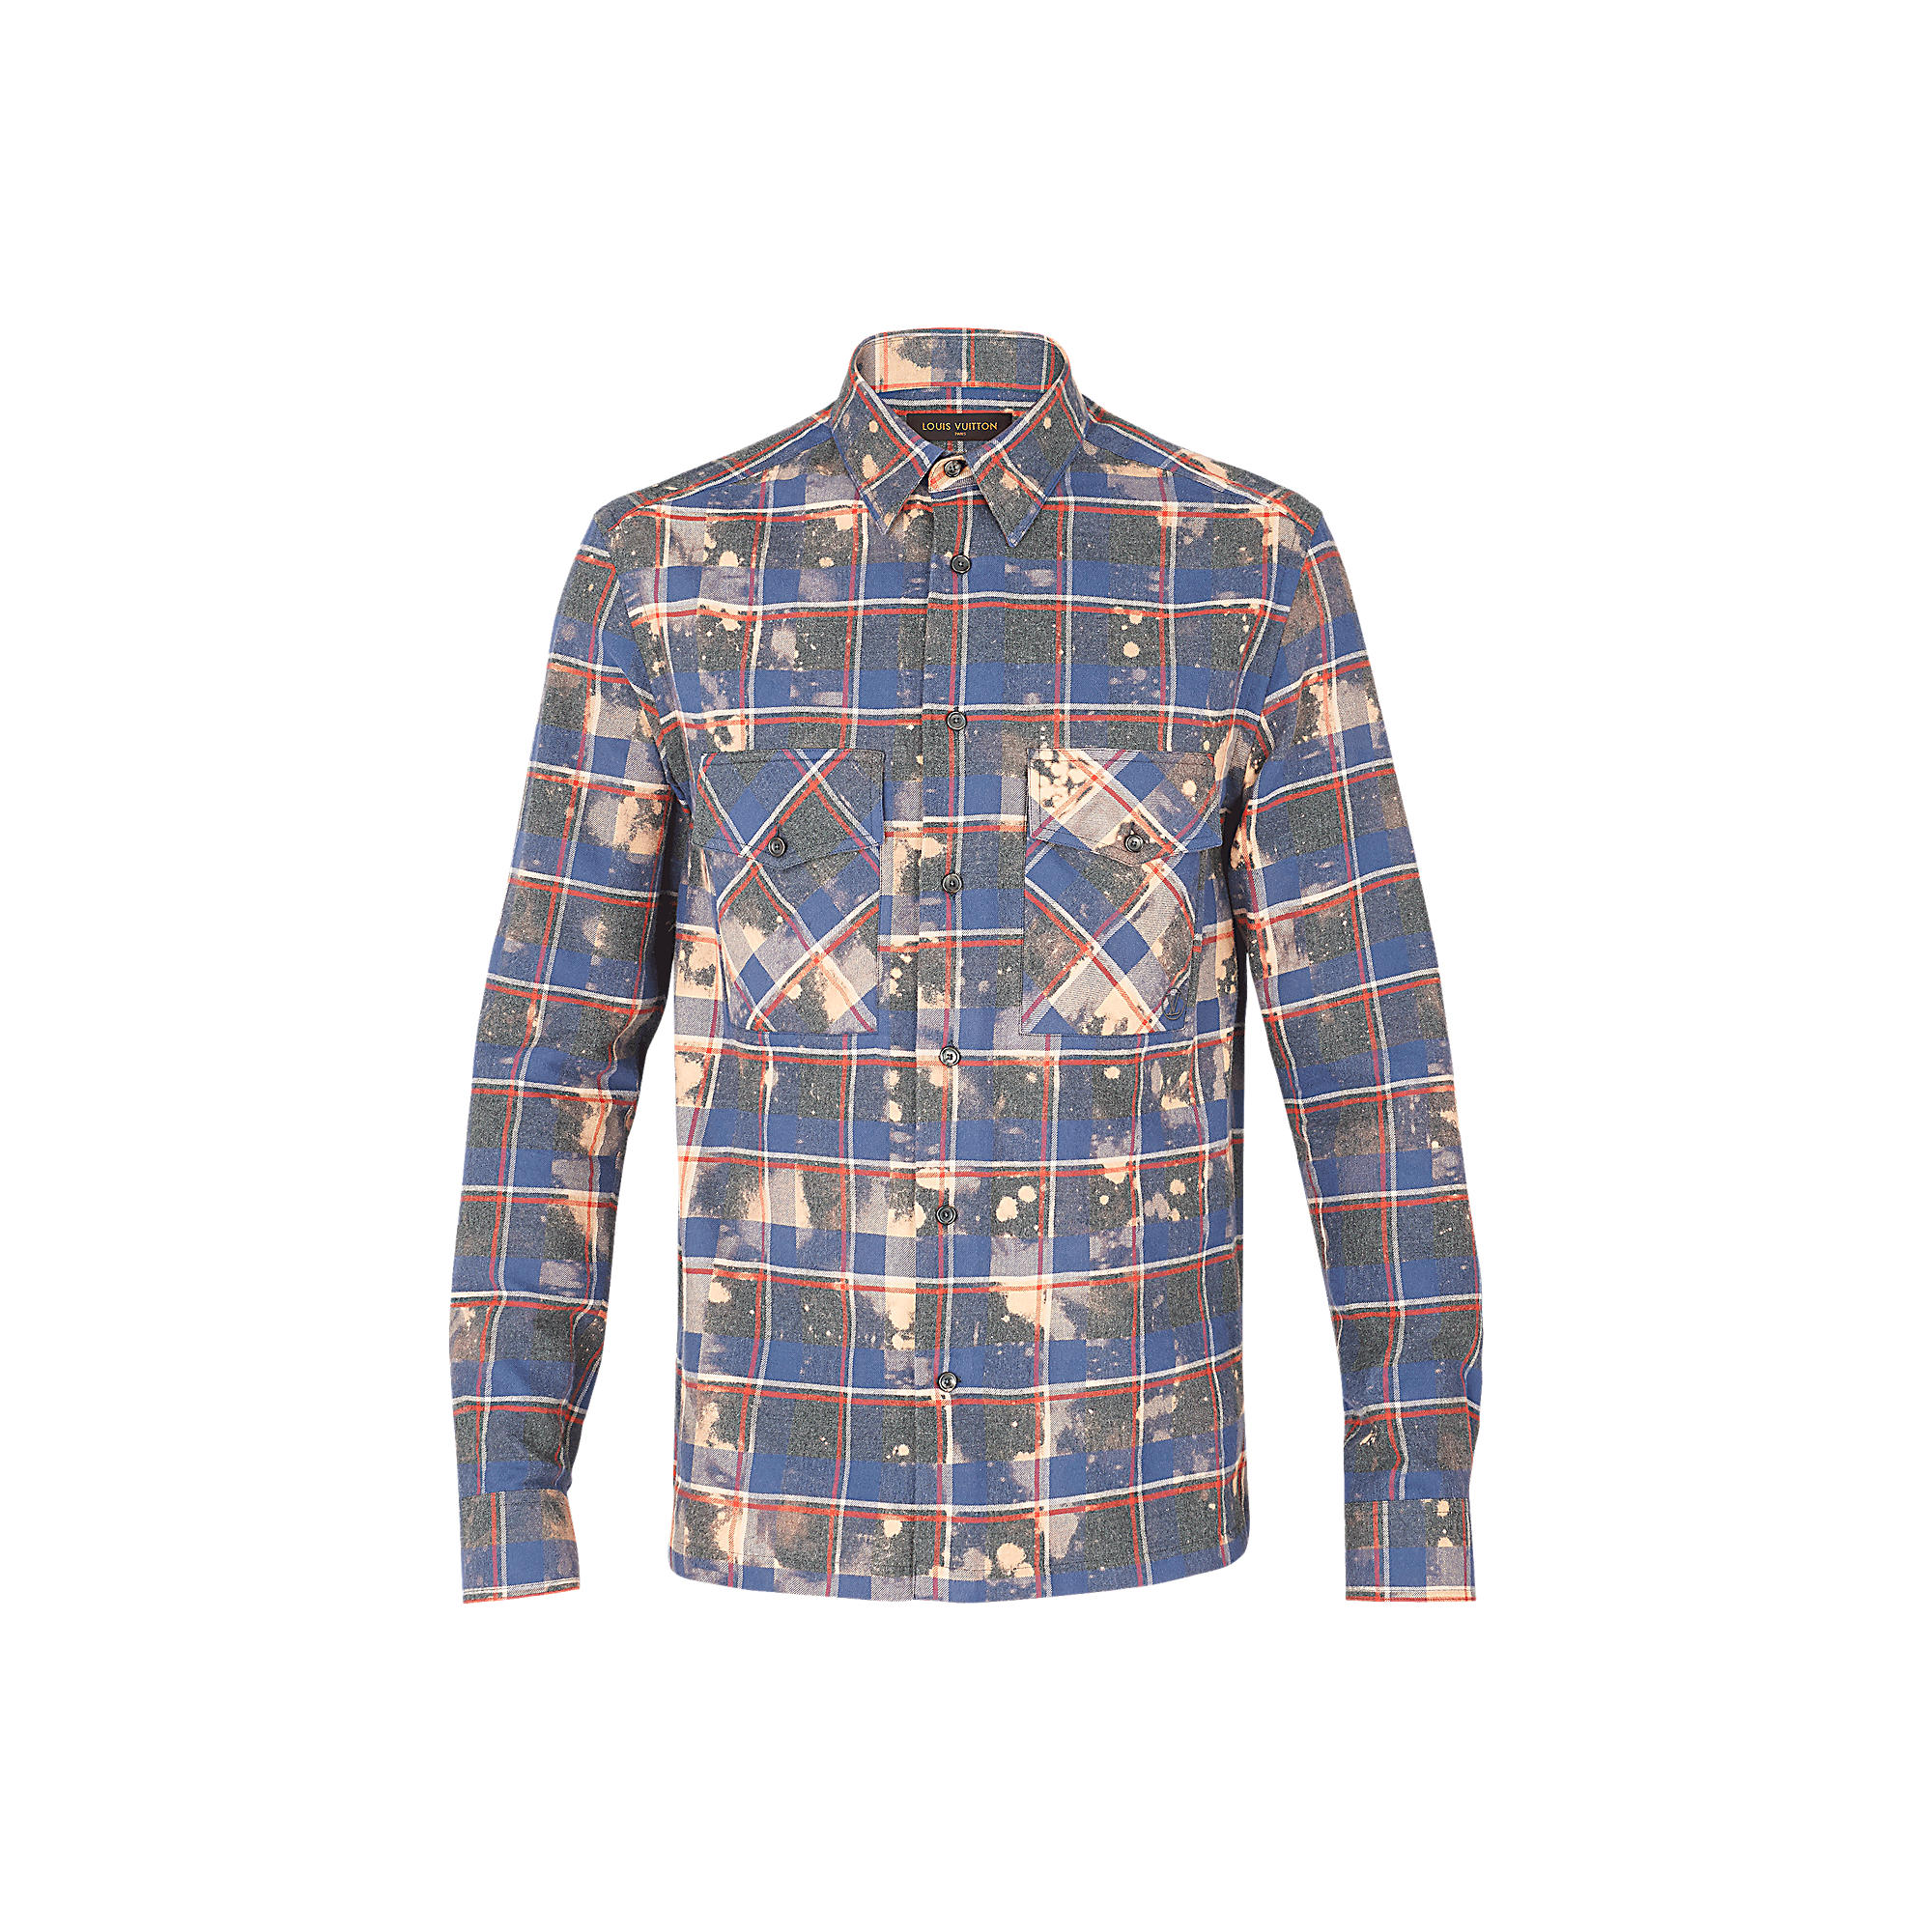 Louis Vuitton Uomo Camicia a quadri decolorata